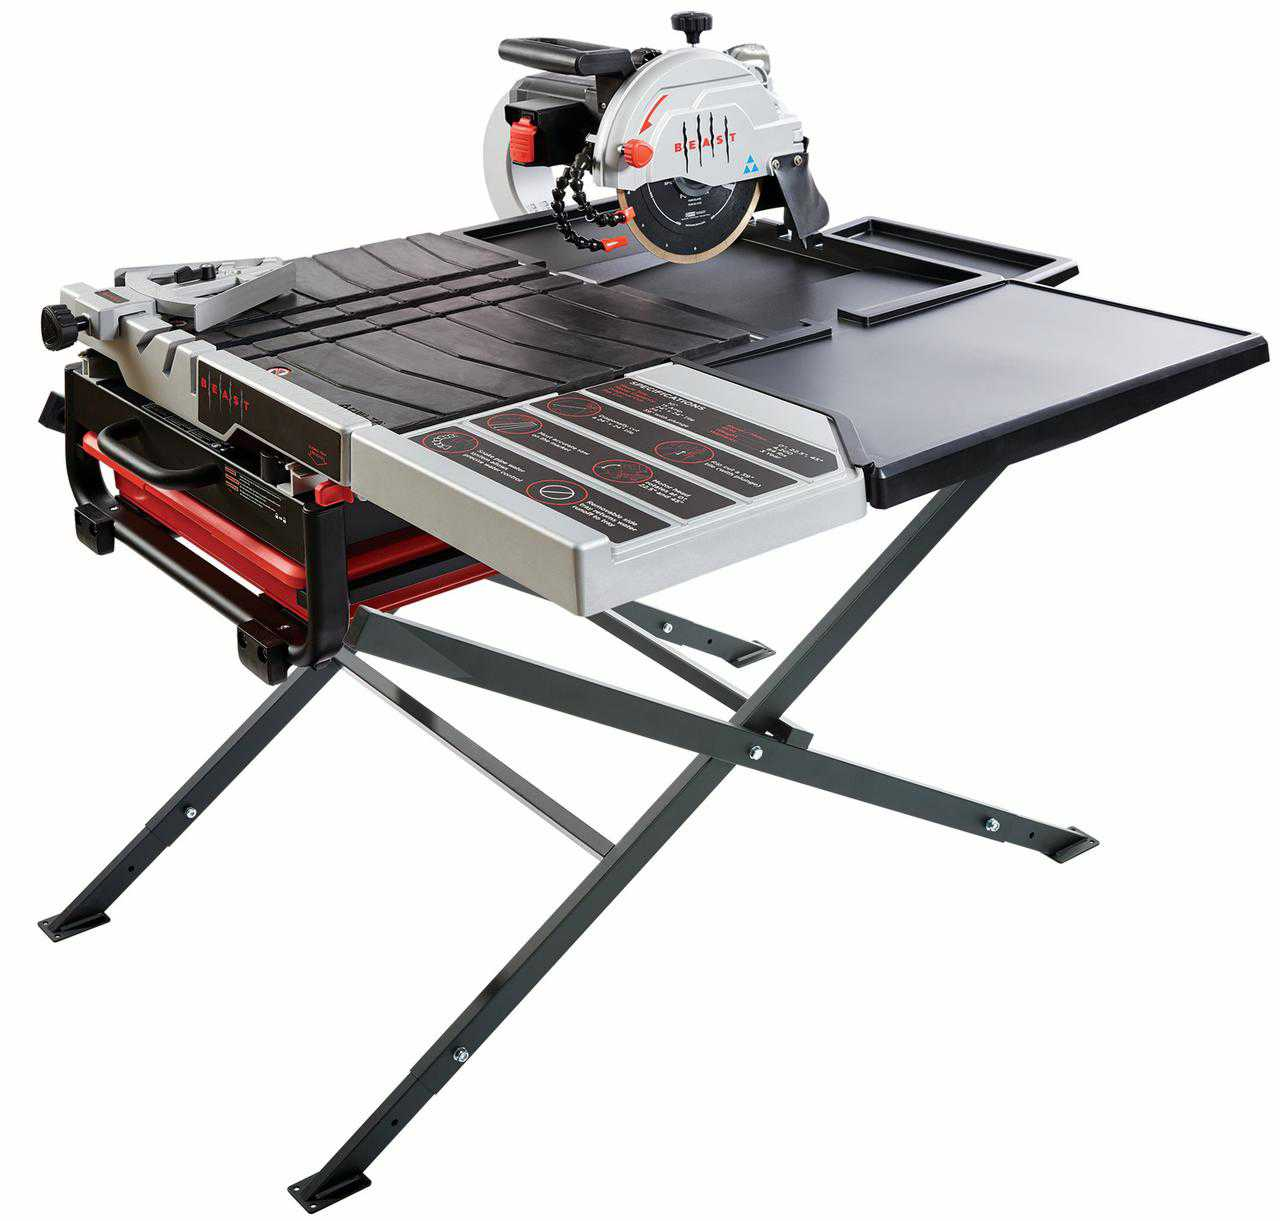 10' Wet Tile Saw Kit W/Scissor Stand